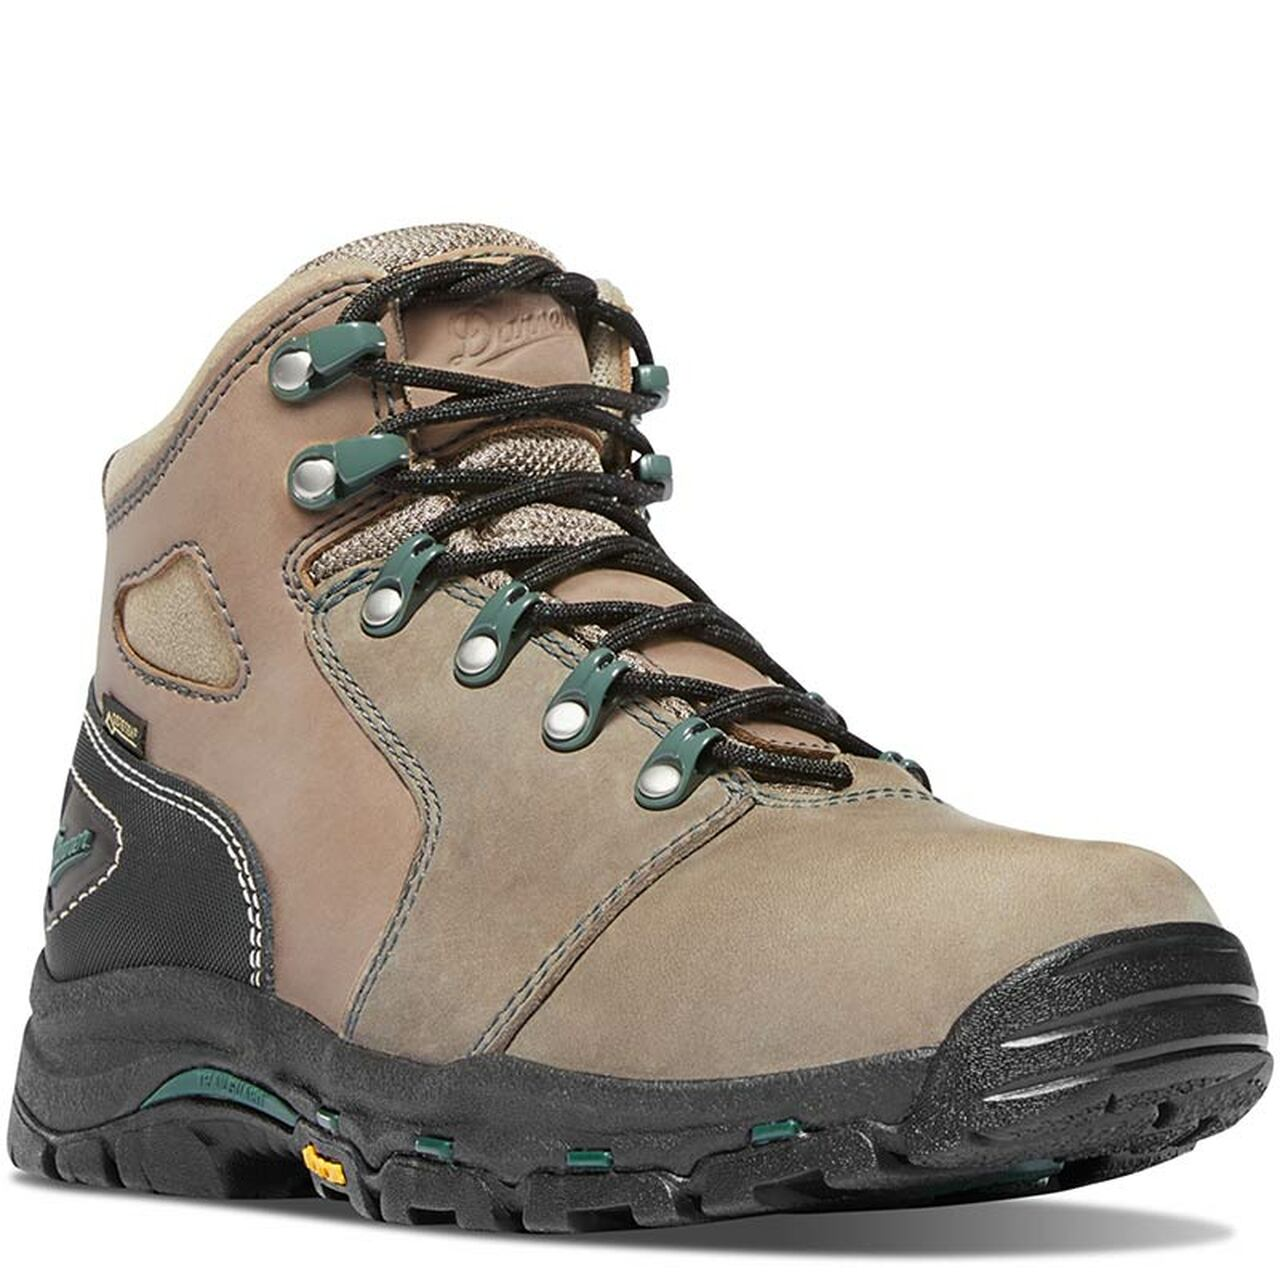 b0b2b403d89 Danner 13853 Women's VICIOUS Composite Toe Hiking Work Boot